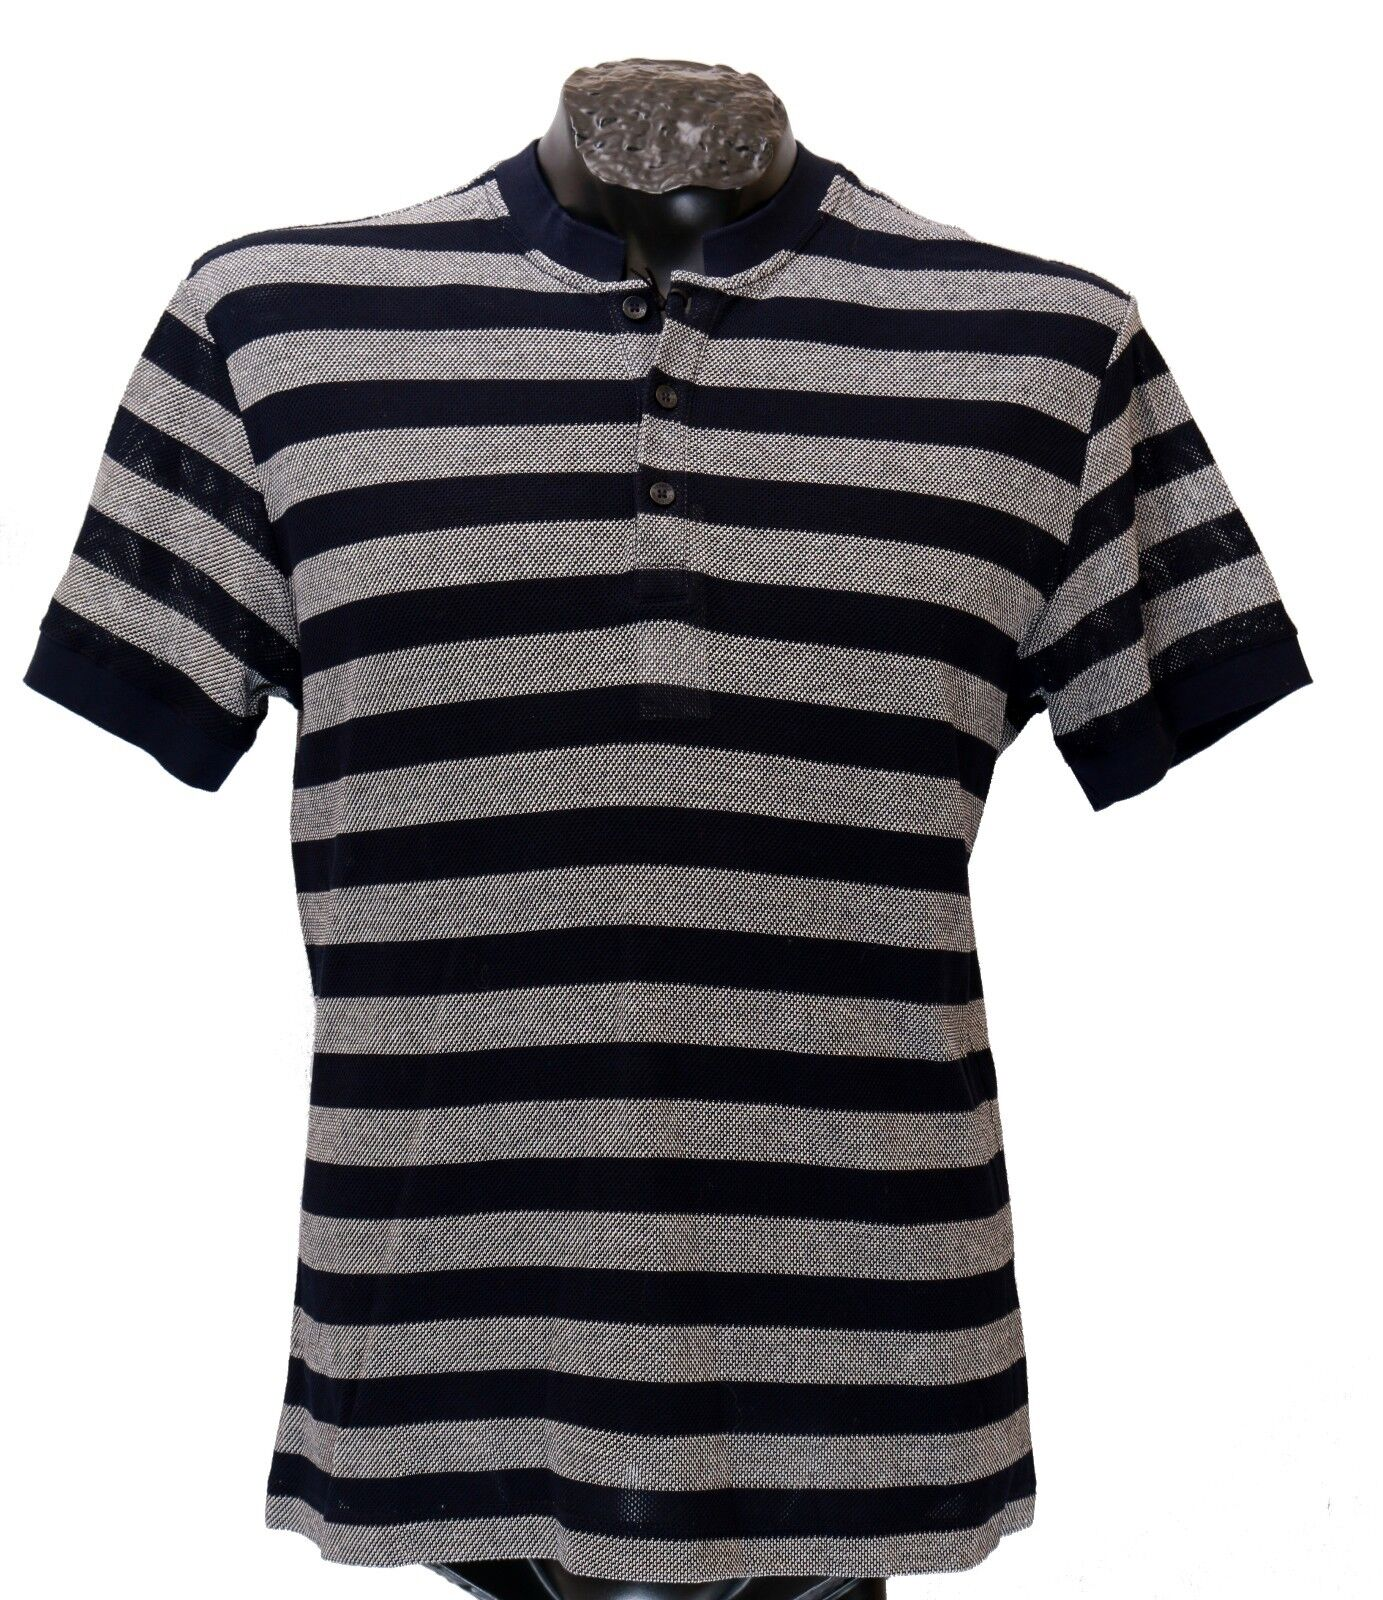 dcfd9747a37f New VERSACE Open 100% Cotton Striped Polo Shirt sz M COLLECTION Knit ...